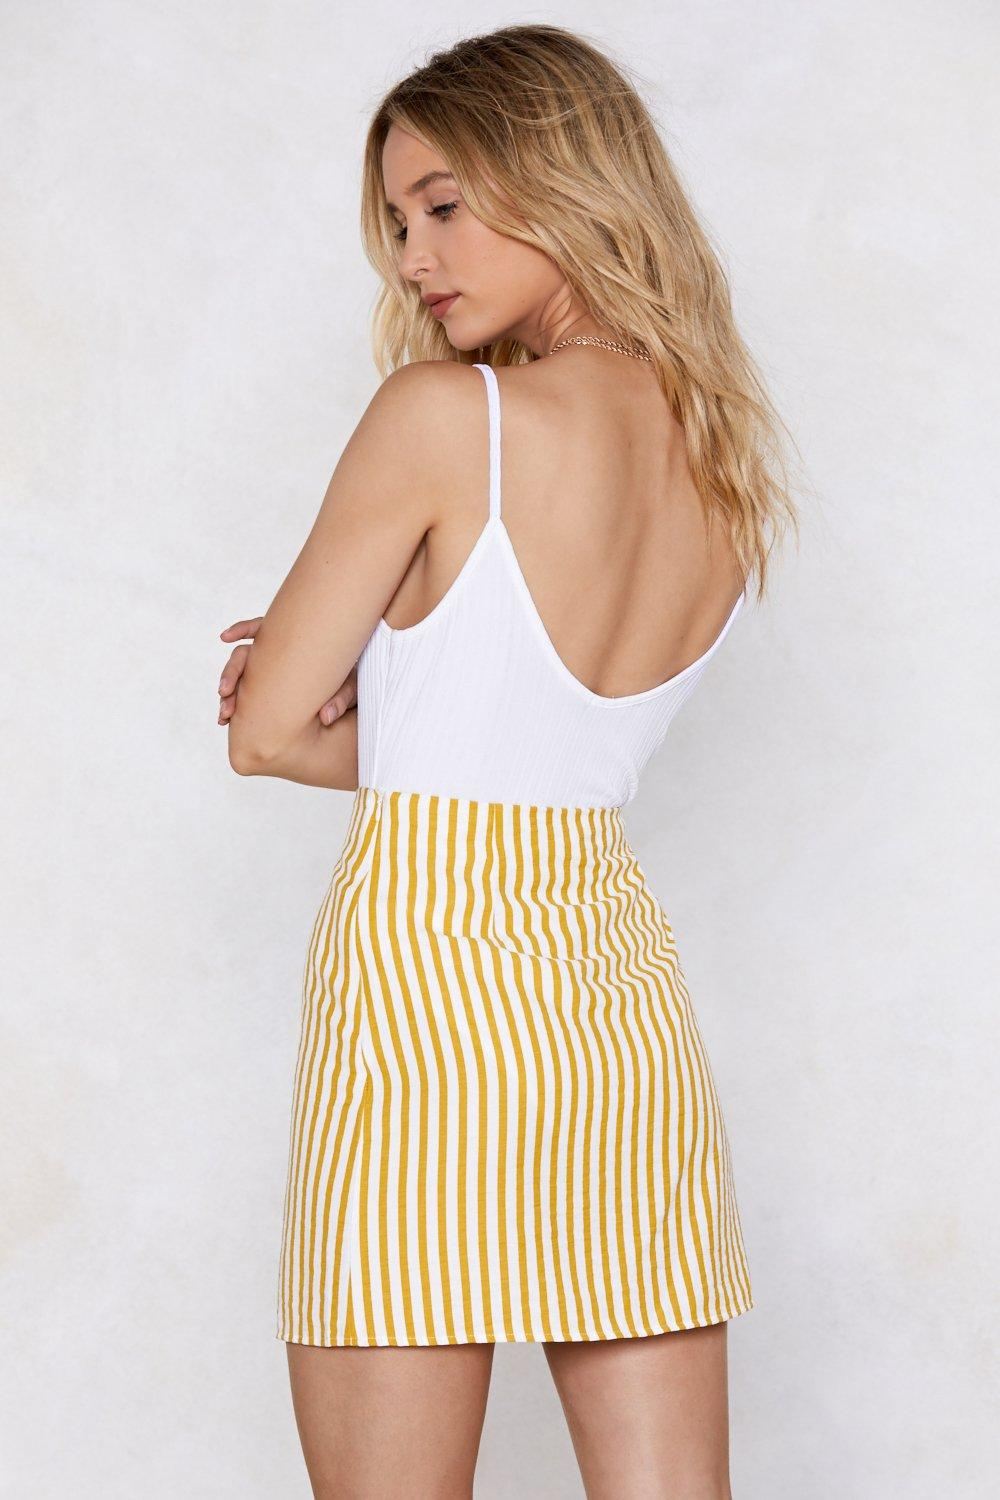 543e537be0 Get Down to It Striped Skirt | Shop Clothes at Nasty Gal!